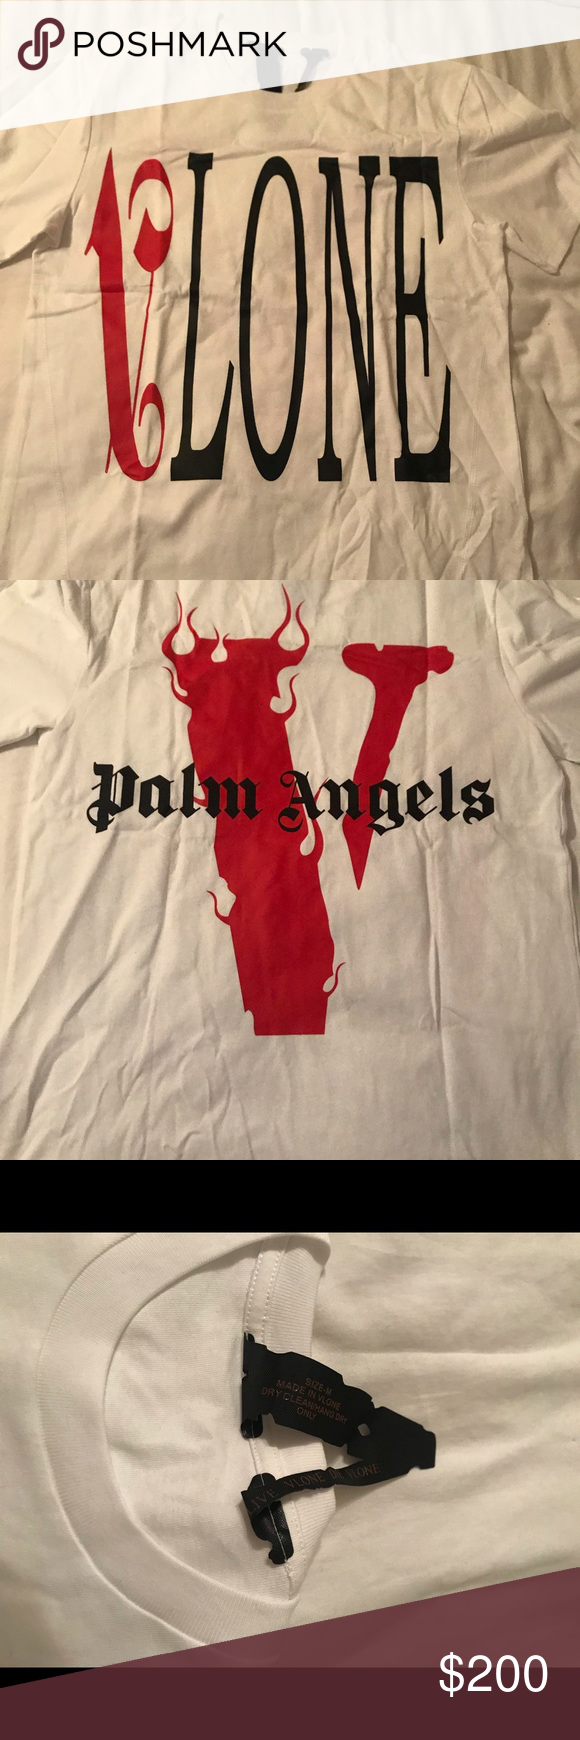 a72ffa3c16114e Vlone x Palm Angels Tee Vlone x Palm Angels Tee Great condition worn less  than 10 times VLONE Shirts Tees - Short Sleeve